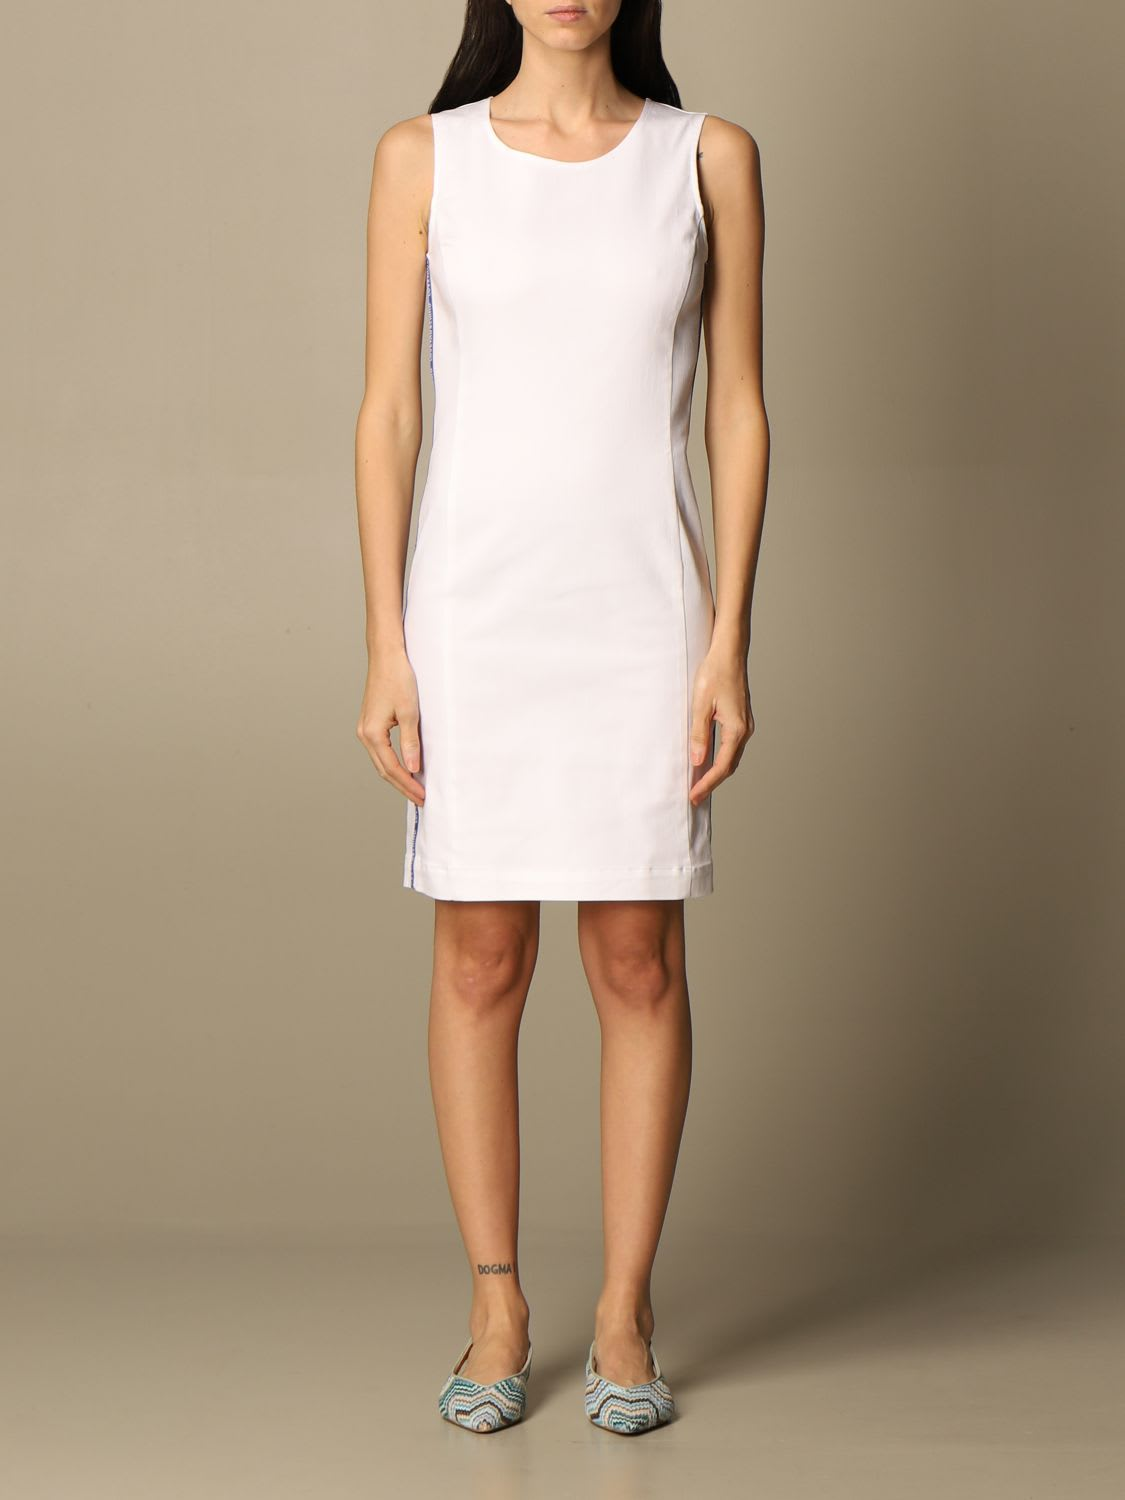 Love Moschino Dress Love Moschino Sheath Dress In Stretch Cotton With Bands